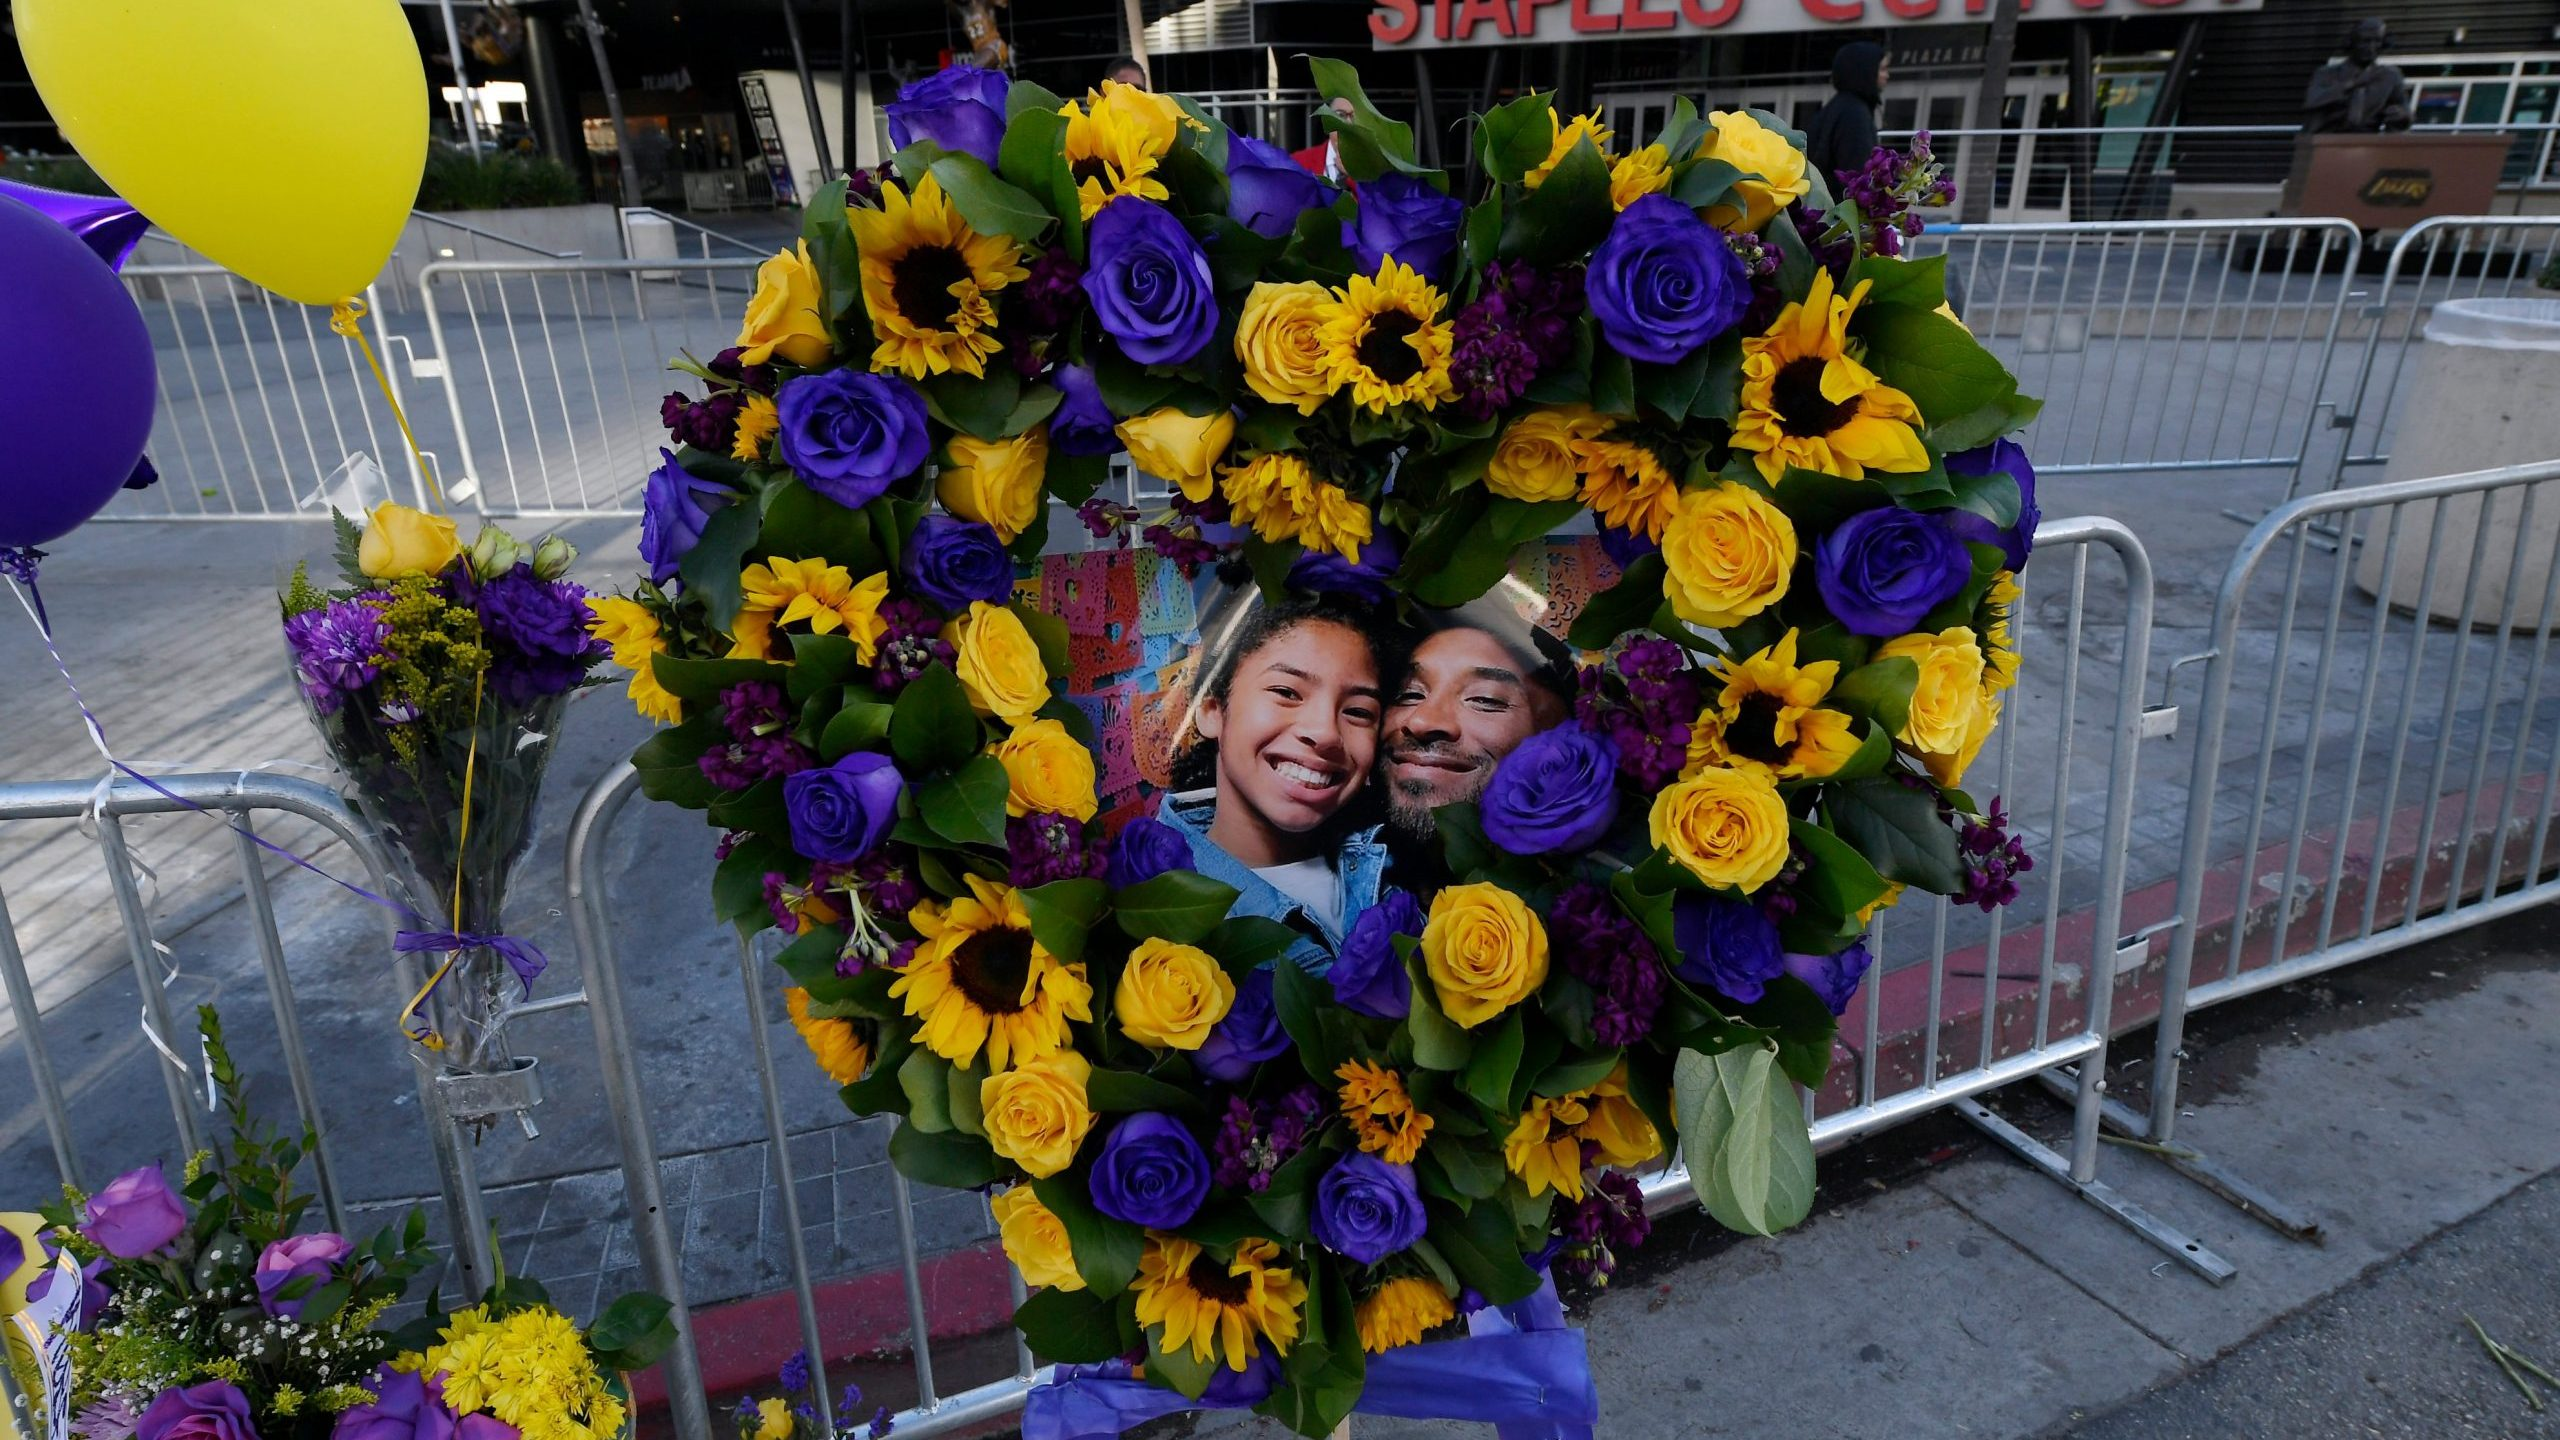 Fans continue to pay their respect to Kobe Bryant and his daughter Gianna, 13, at a memorial set up outside of Staples Center on January 28, 2020 in Los Angeles, California. (Credit: Kevork Djansezian/Getty Images)